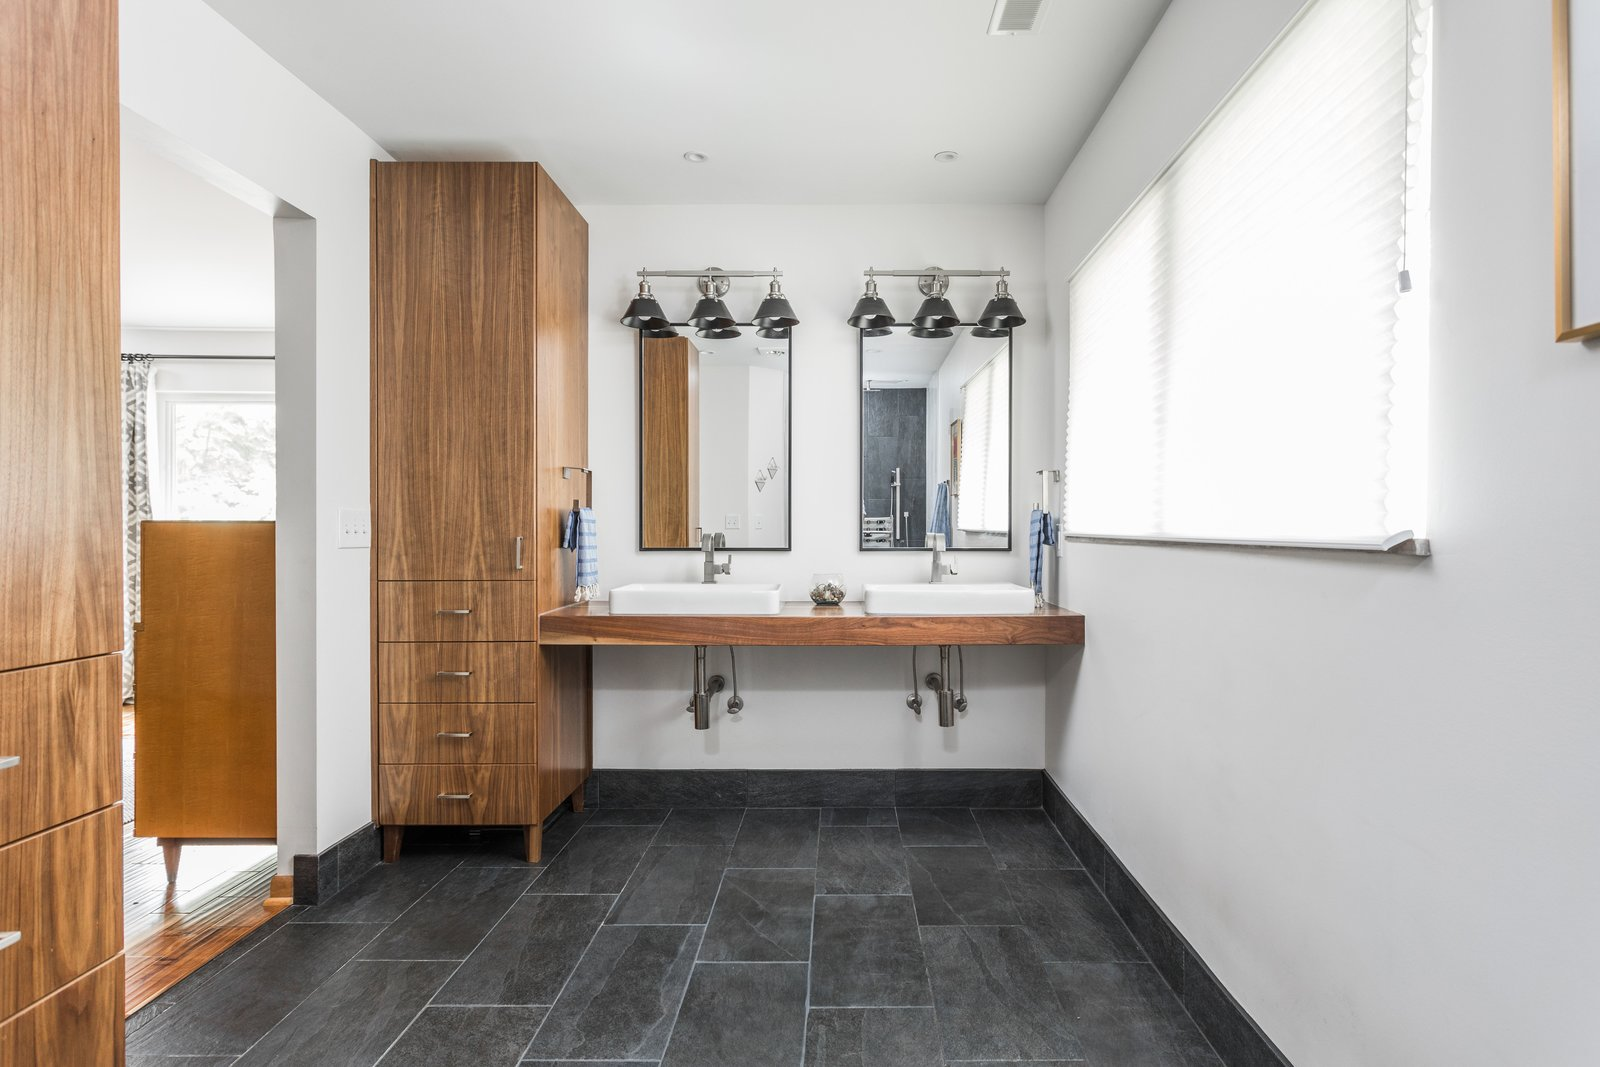 our-bathroom-cabinets-were-really-the-biggest-success-for-us-with-all-the-medical-supplies-we-needed-extra-storage-in-the-bathroom-we-had-a-very-specific-vision-in-mind-which-duvall-woodworking-knocked-out-of-the-park-says-leanne.jpg